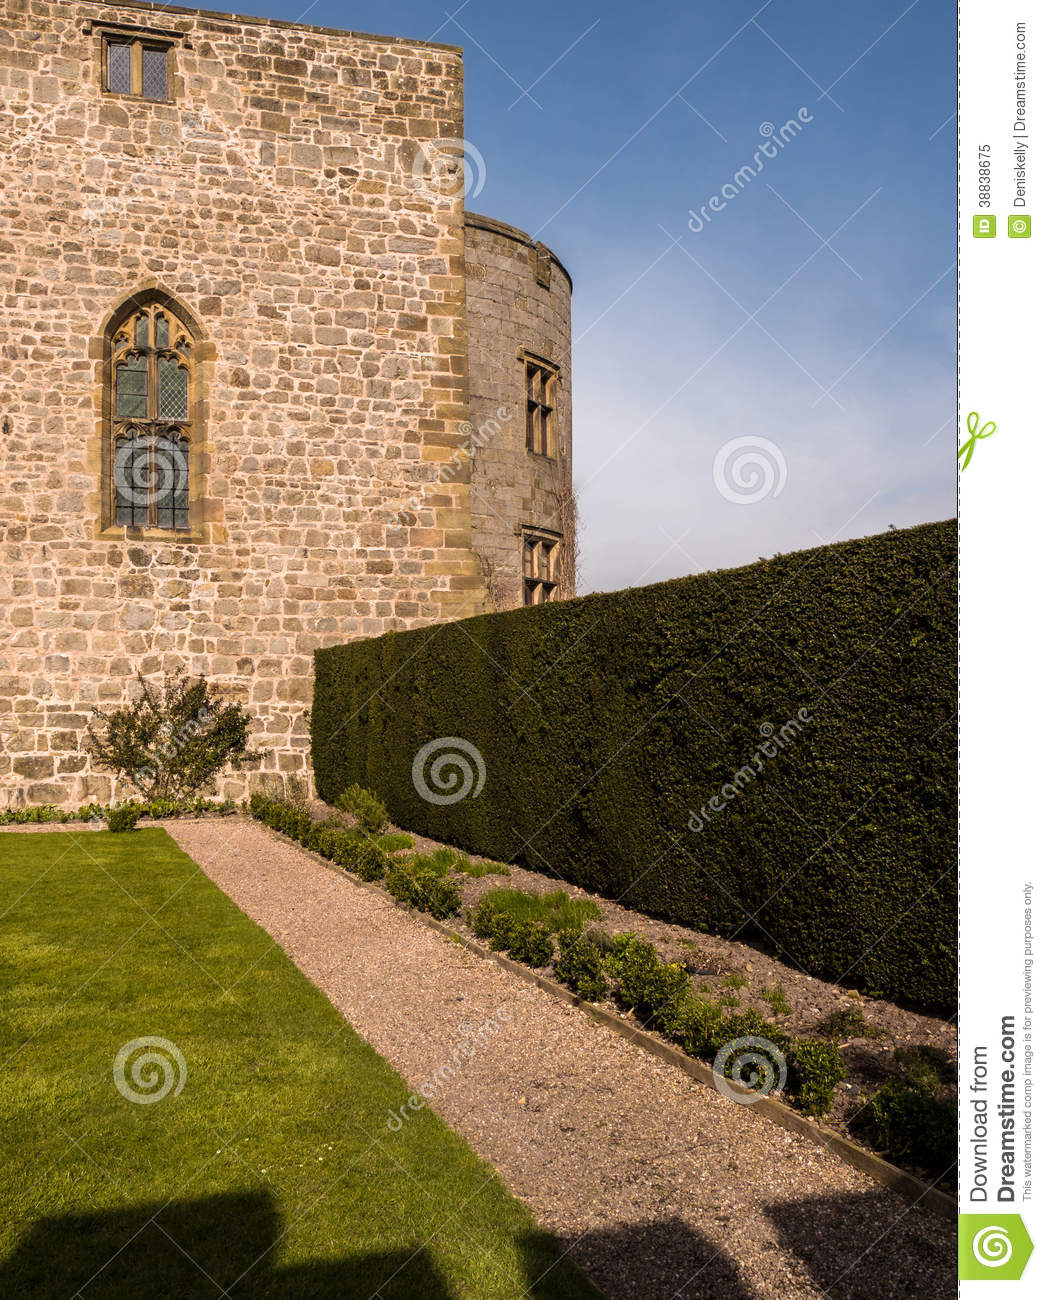 Medieval Castle And Stately Home Garden Stock Image - Image of ...